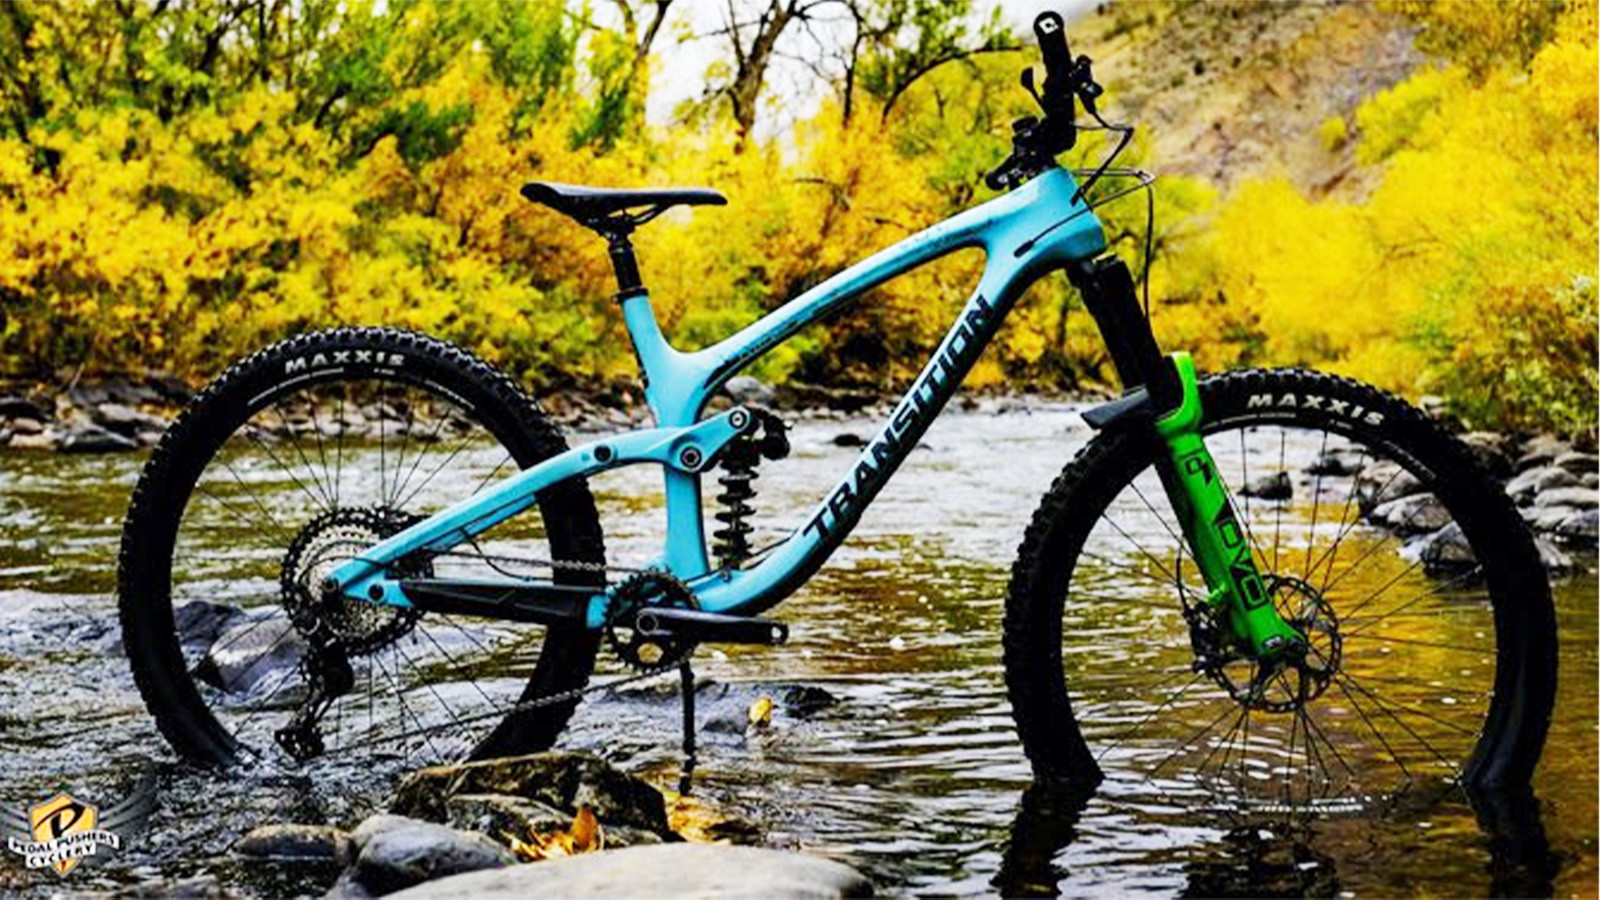 Want to Win a Custom Transition Patrol? Support Trail Building and Enter to Win